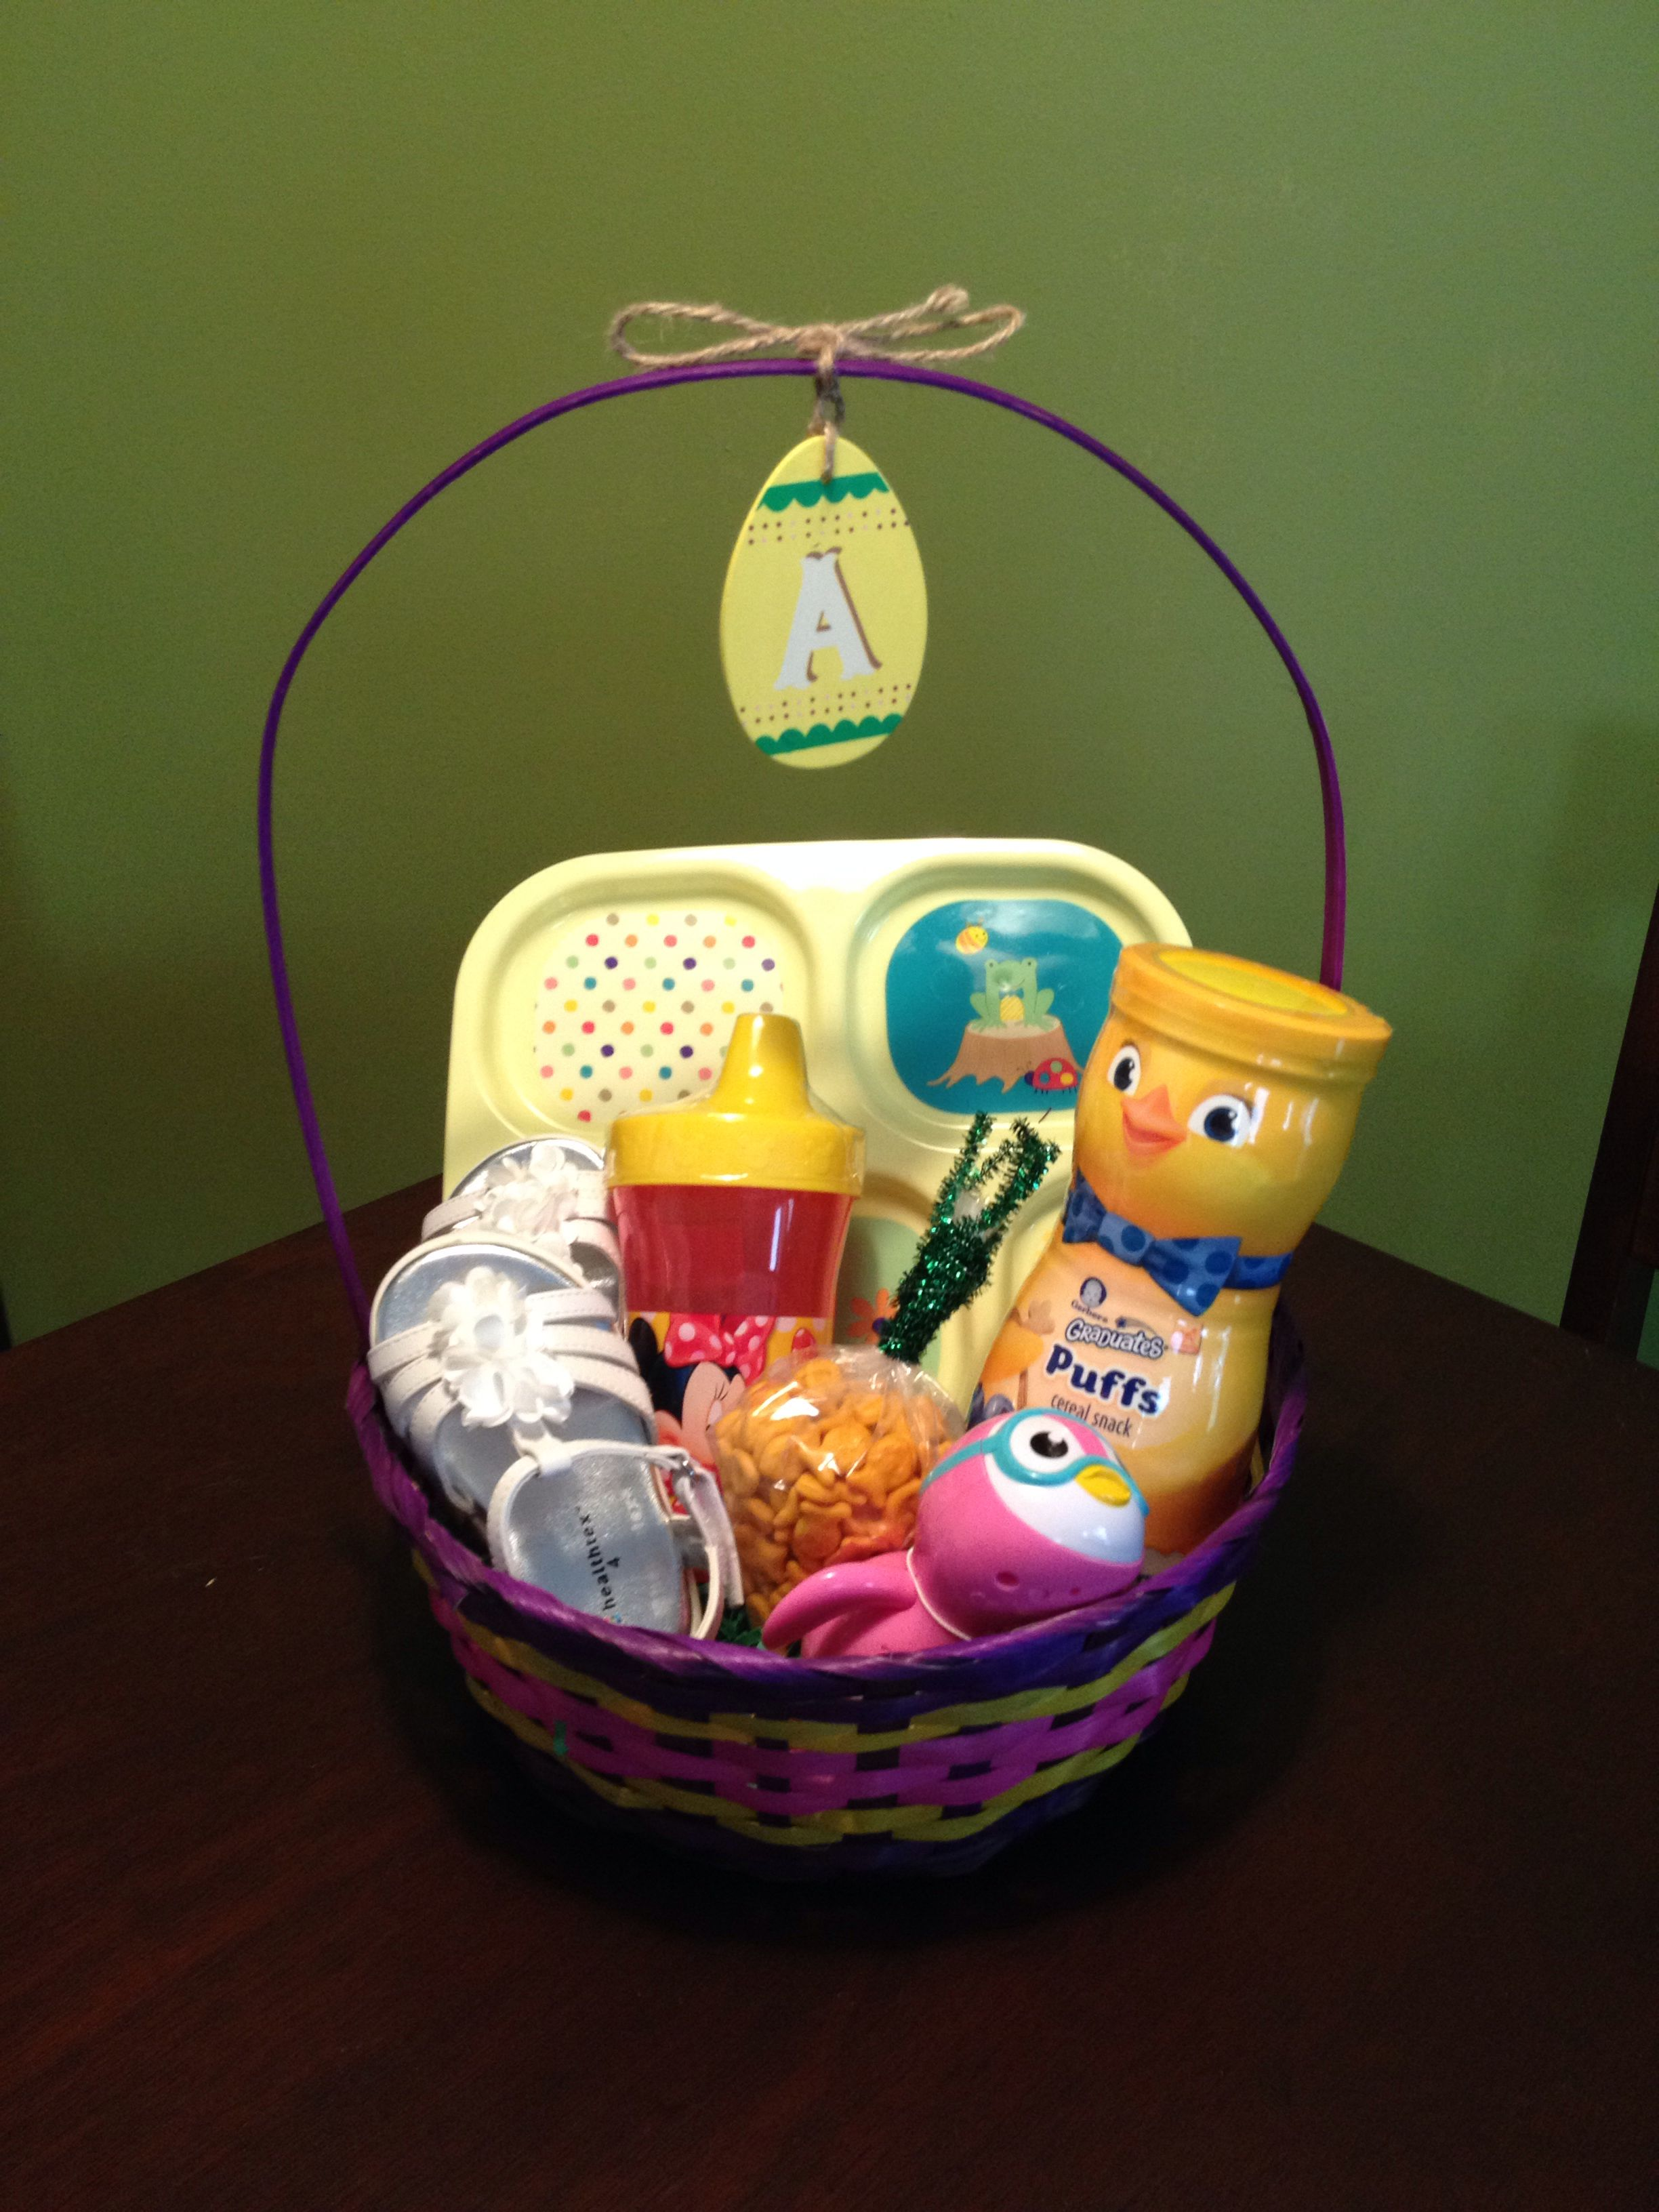 Easter basket for a one year old toddler plate sippy cup bath toy easter basket for a one year old toddler plate sippy cup bath toy sandals puffs and goldfish carrot negle Choice Image